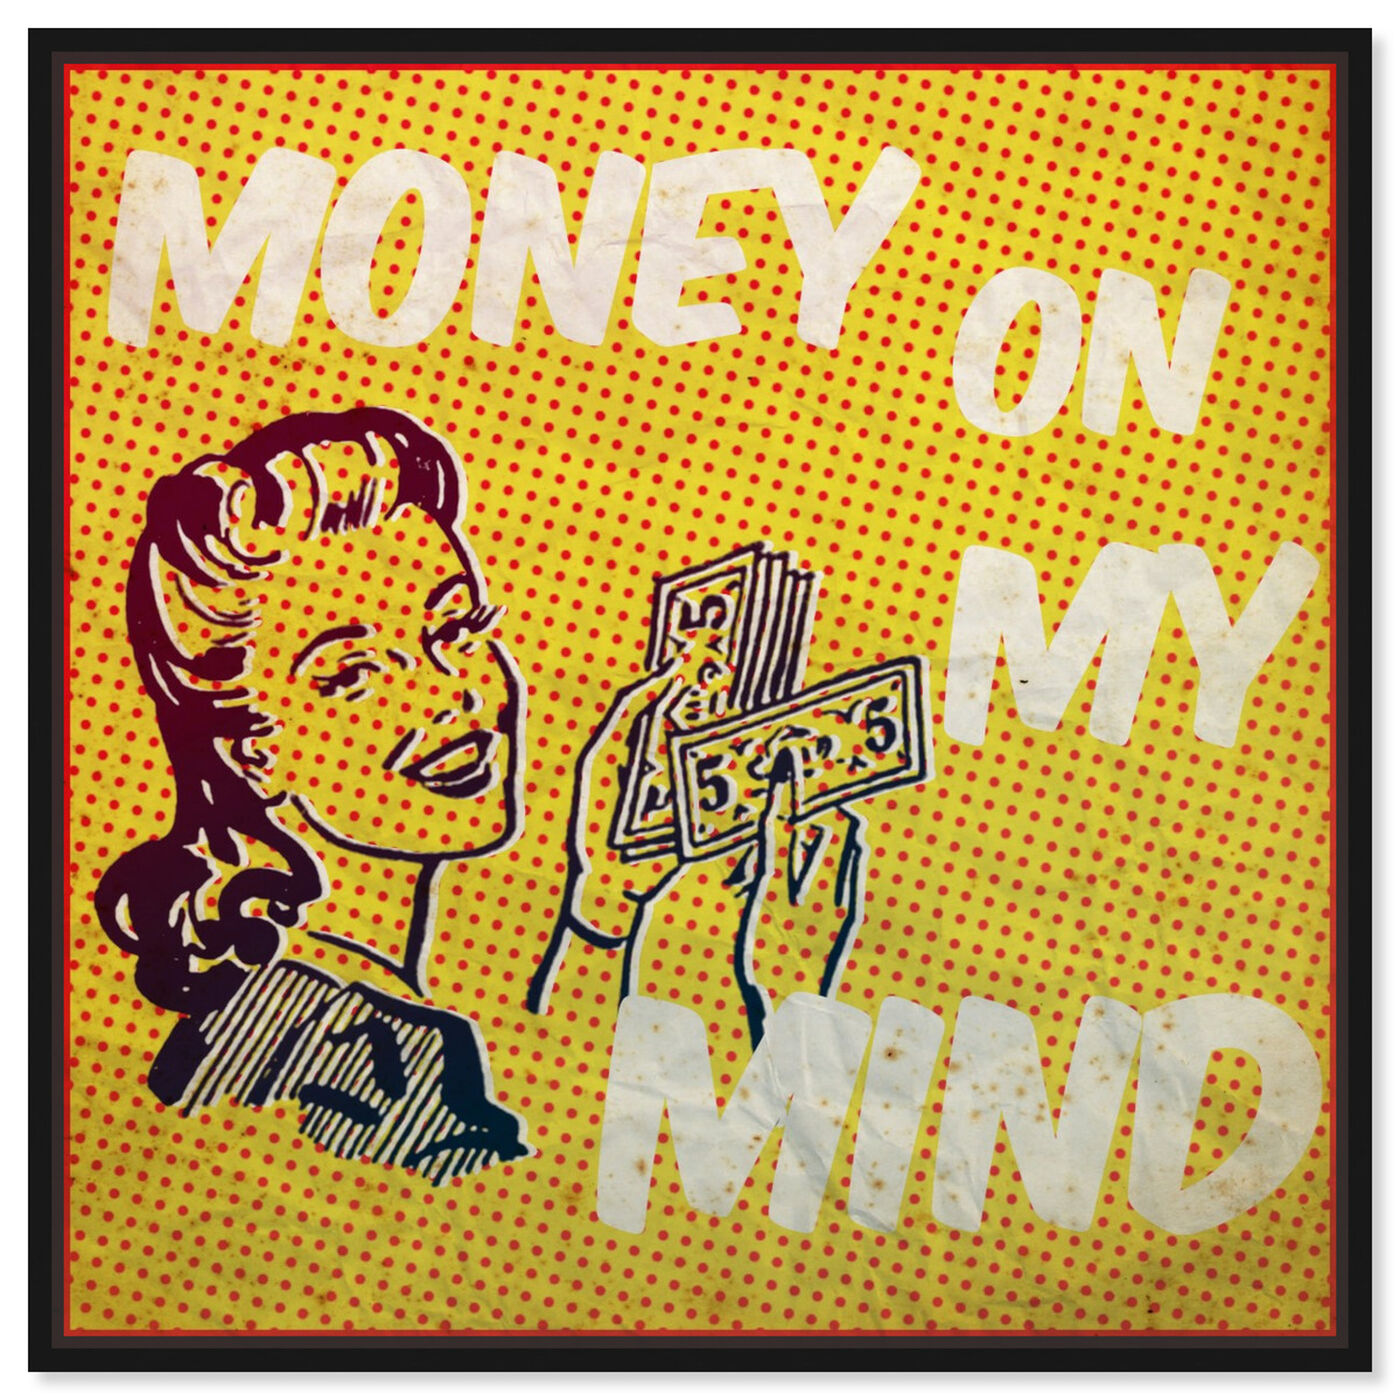 Front view of Money on My Mind featuring advertising and comics art.